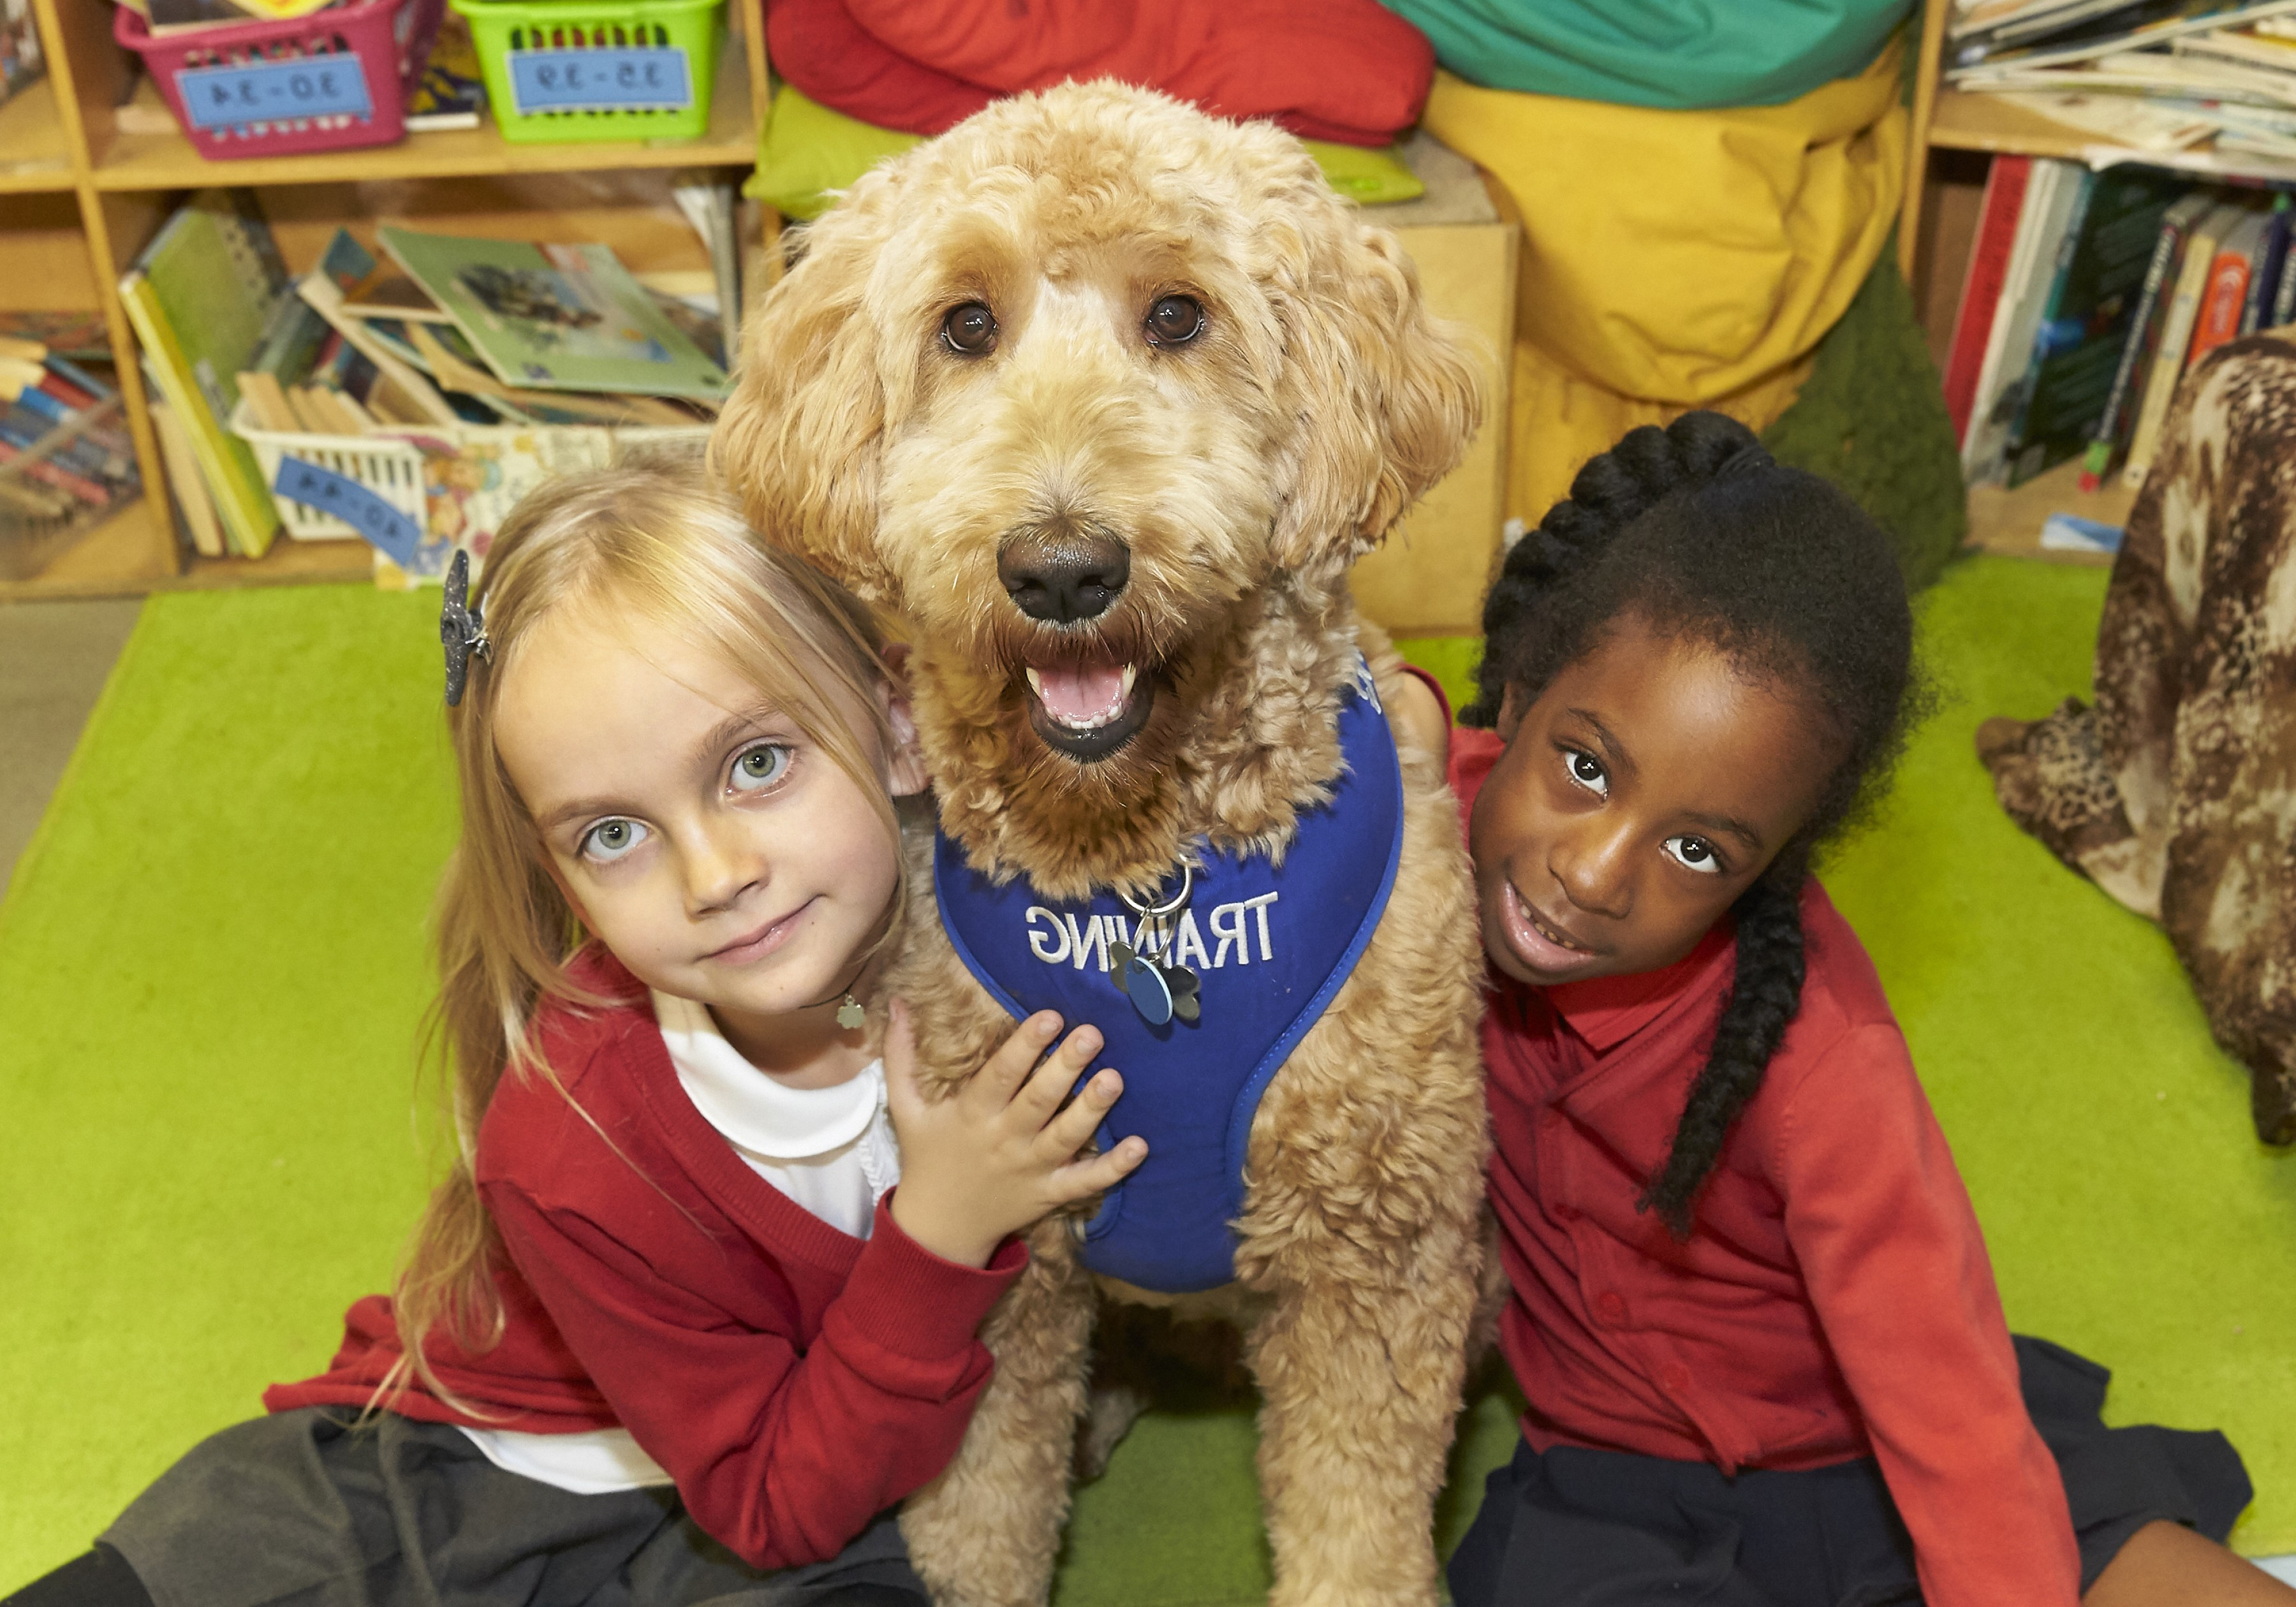 Goldendoodle Vector SVG: Luna The Golden Retriever Poodle Cross To Join Rotherhithe Primary School As Autism Therapy Dog